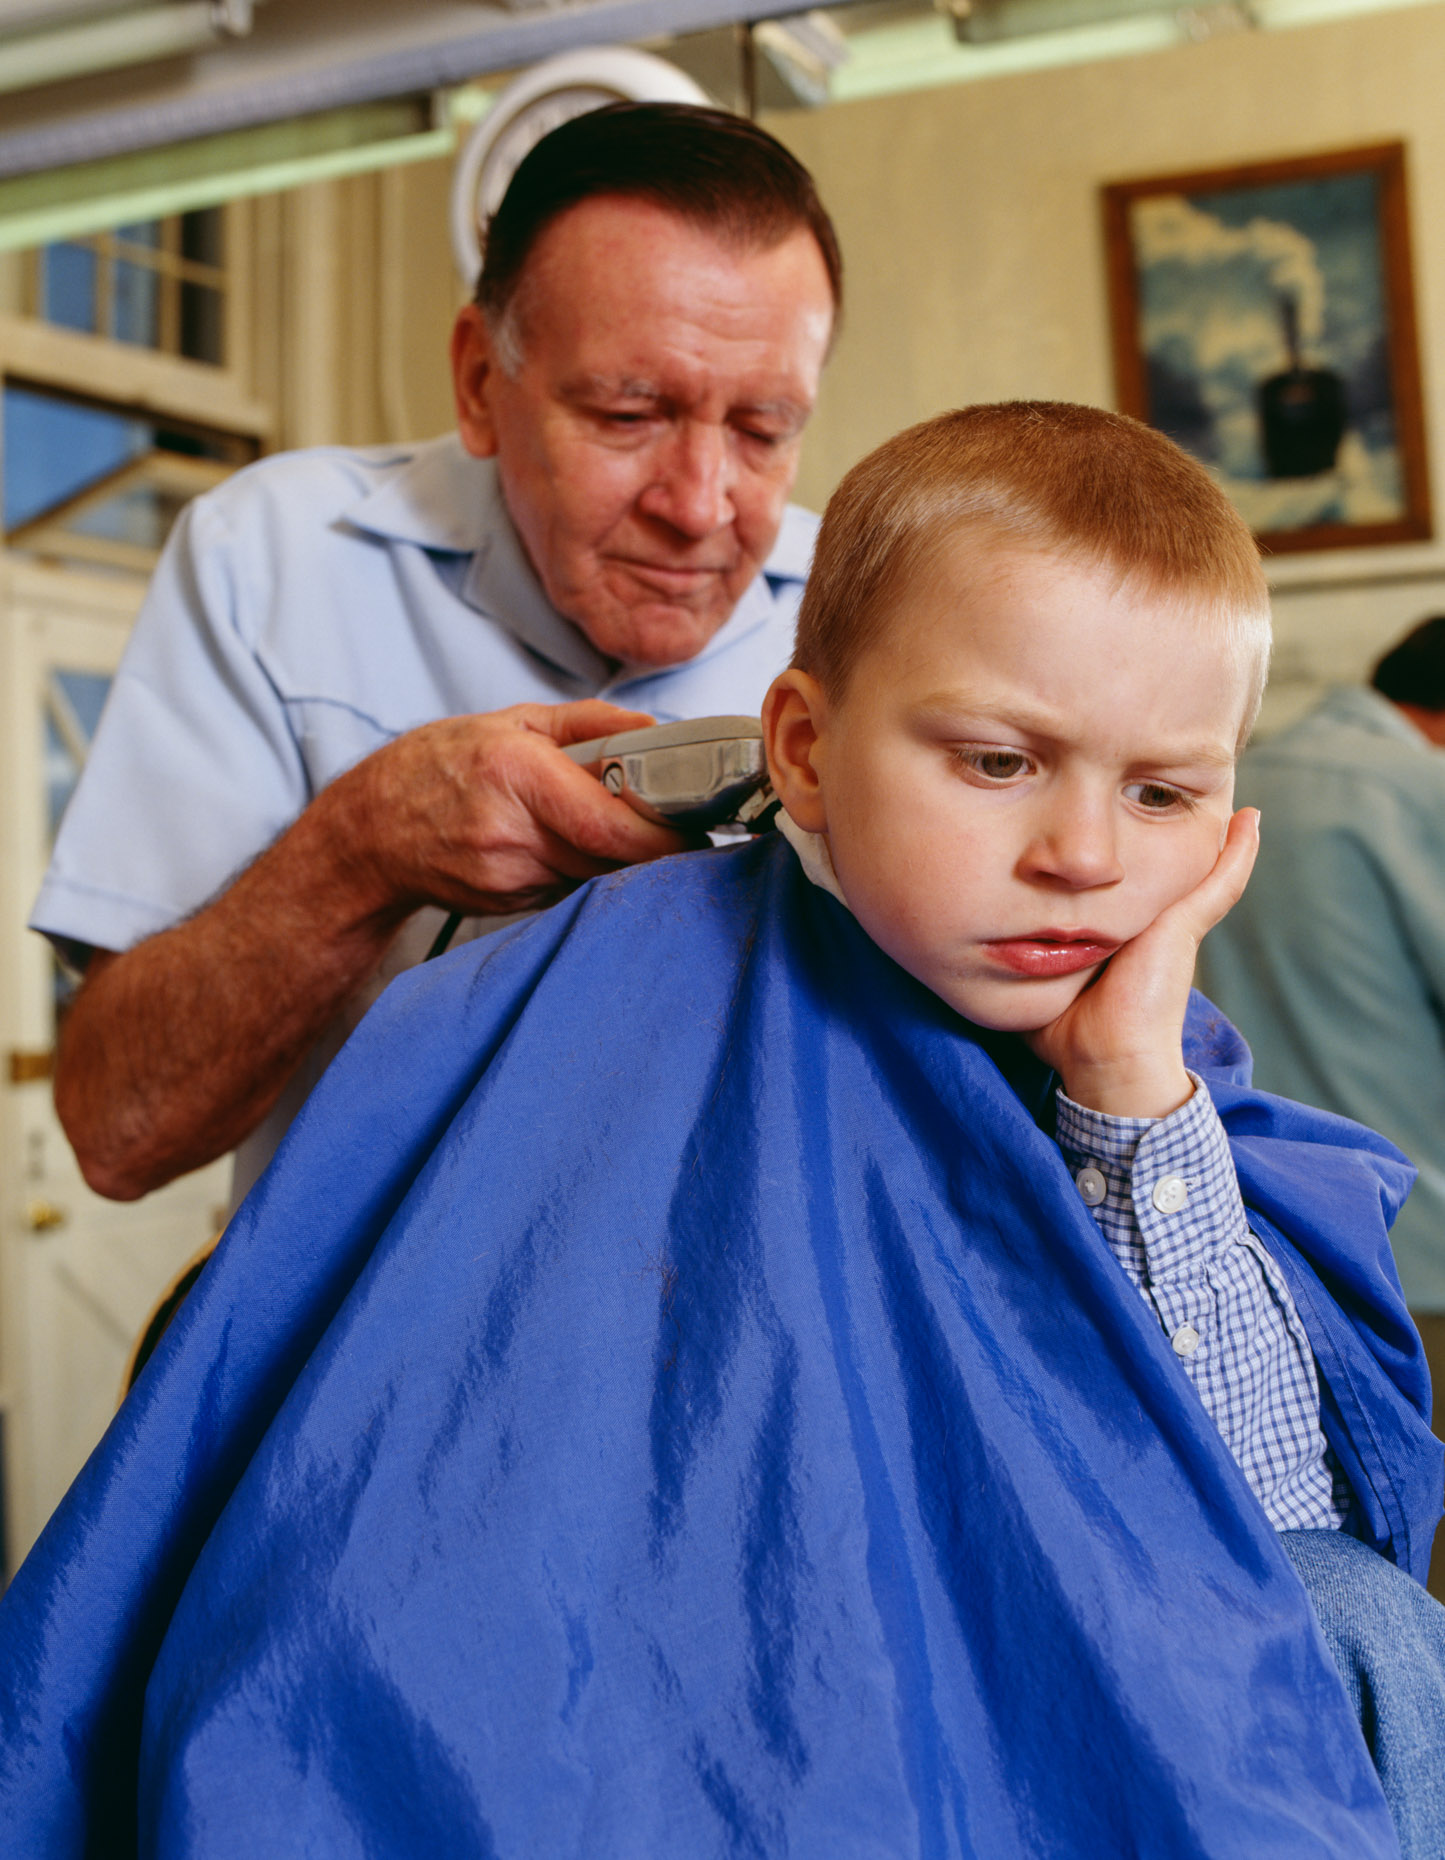 Boy (4-5 years old) having hair cut by male barber.